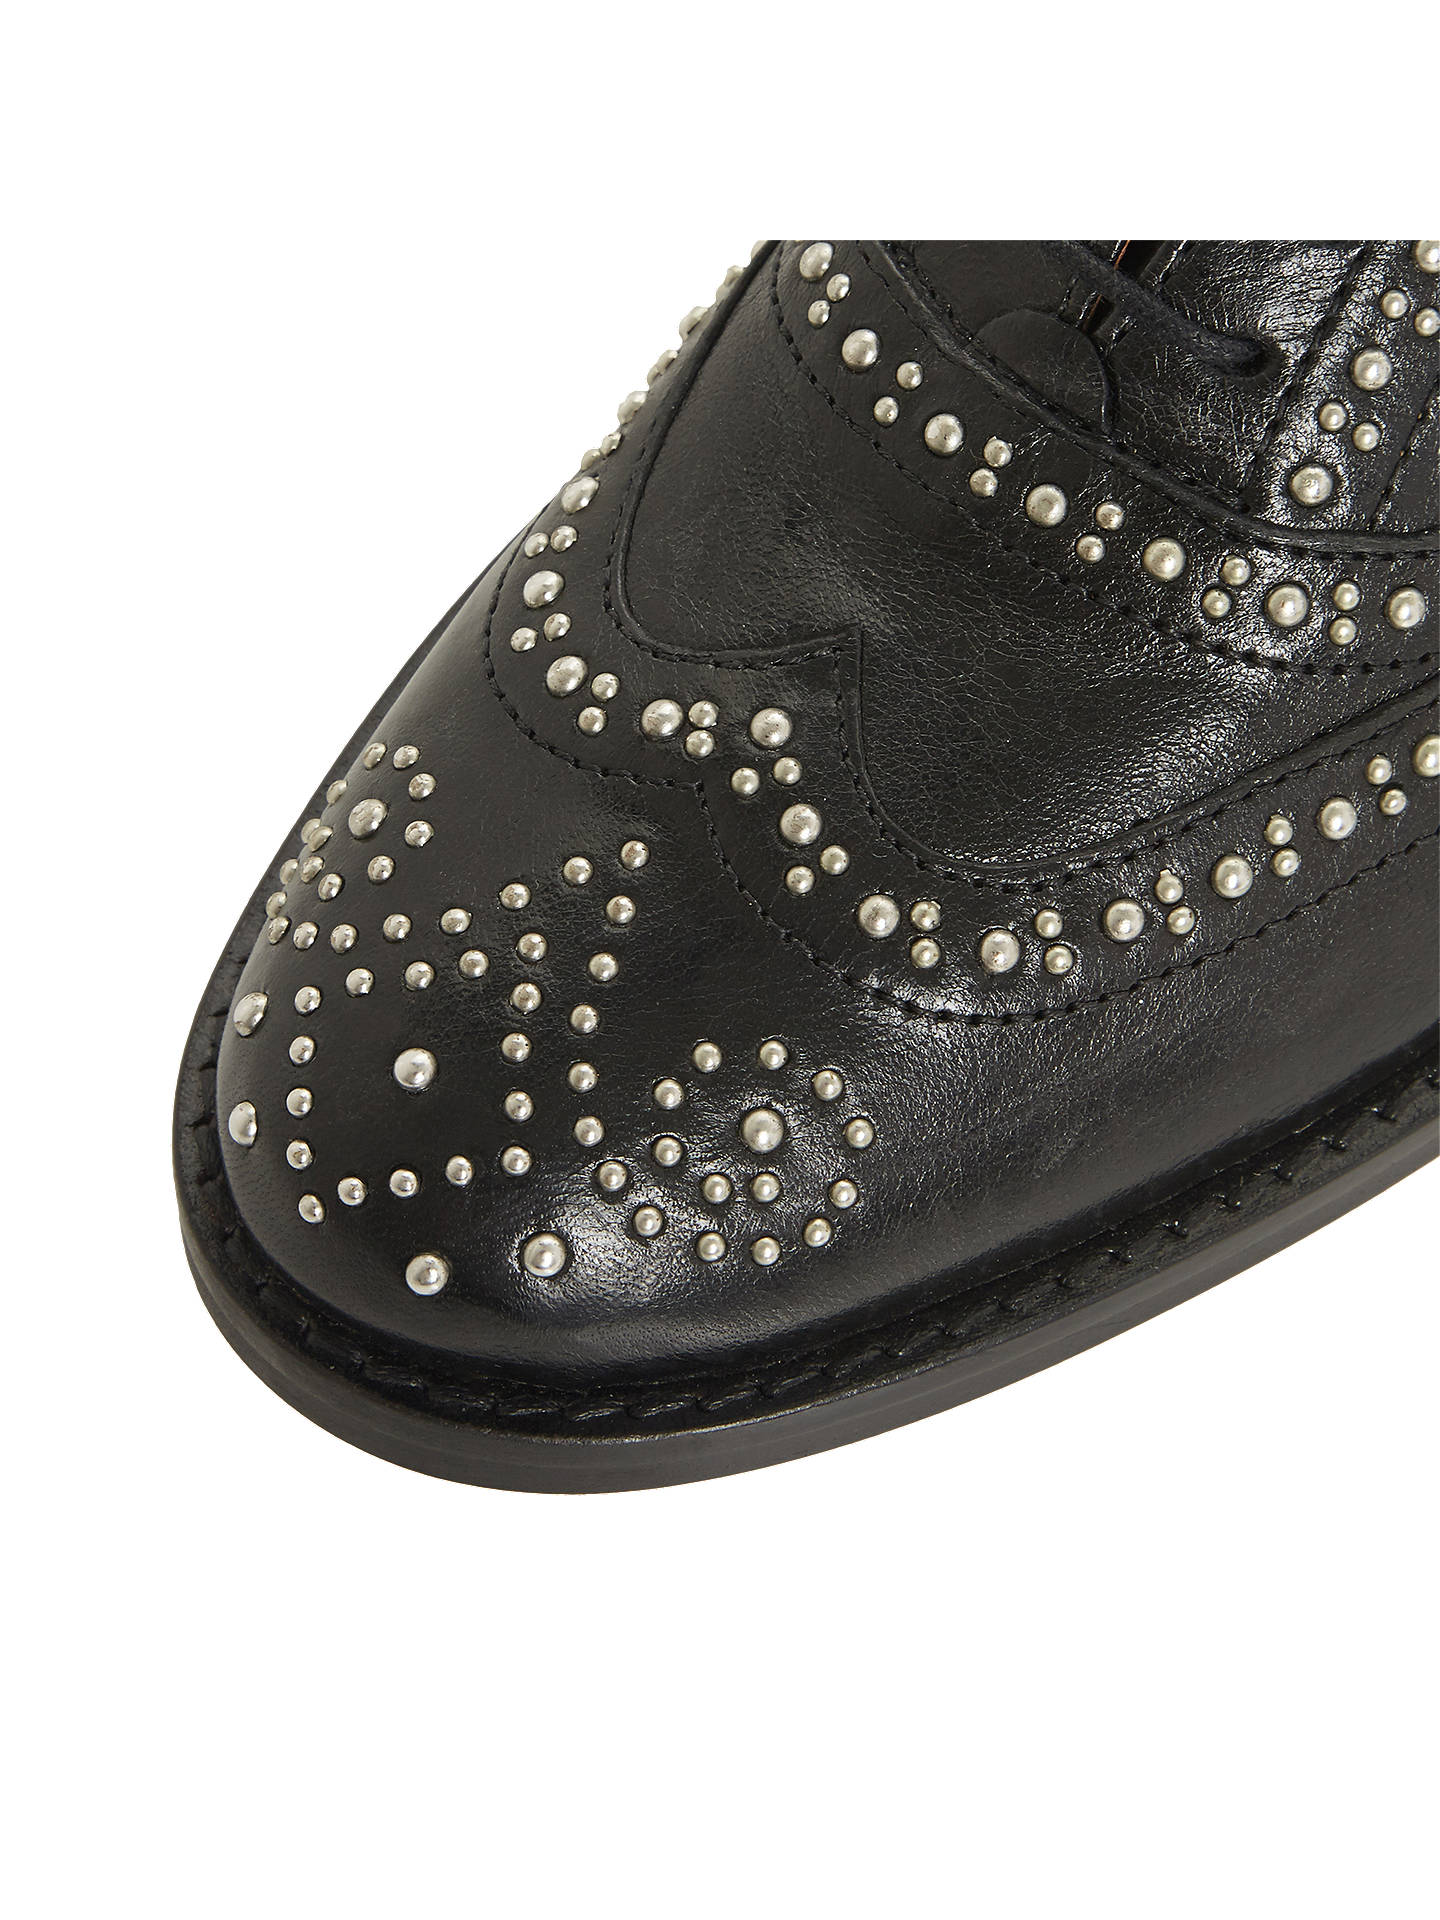 Buy Bertie Farryn Studded Lace Up Brogues, Black, 3 Online at johnlewis.com